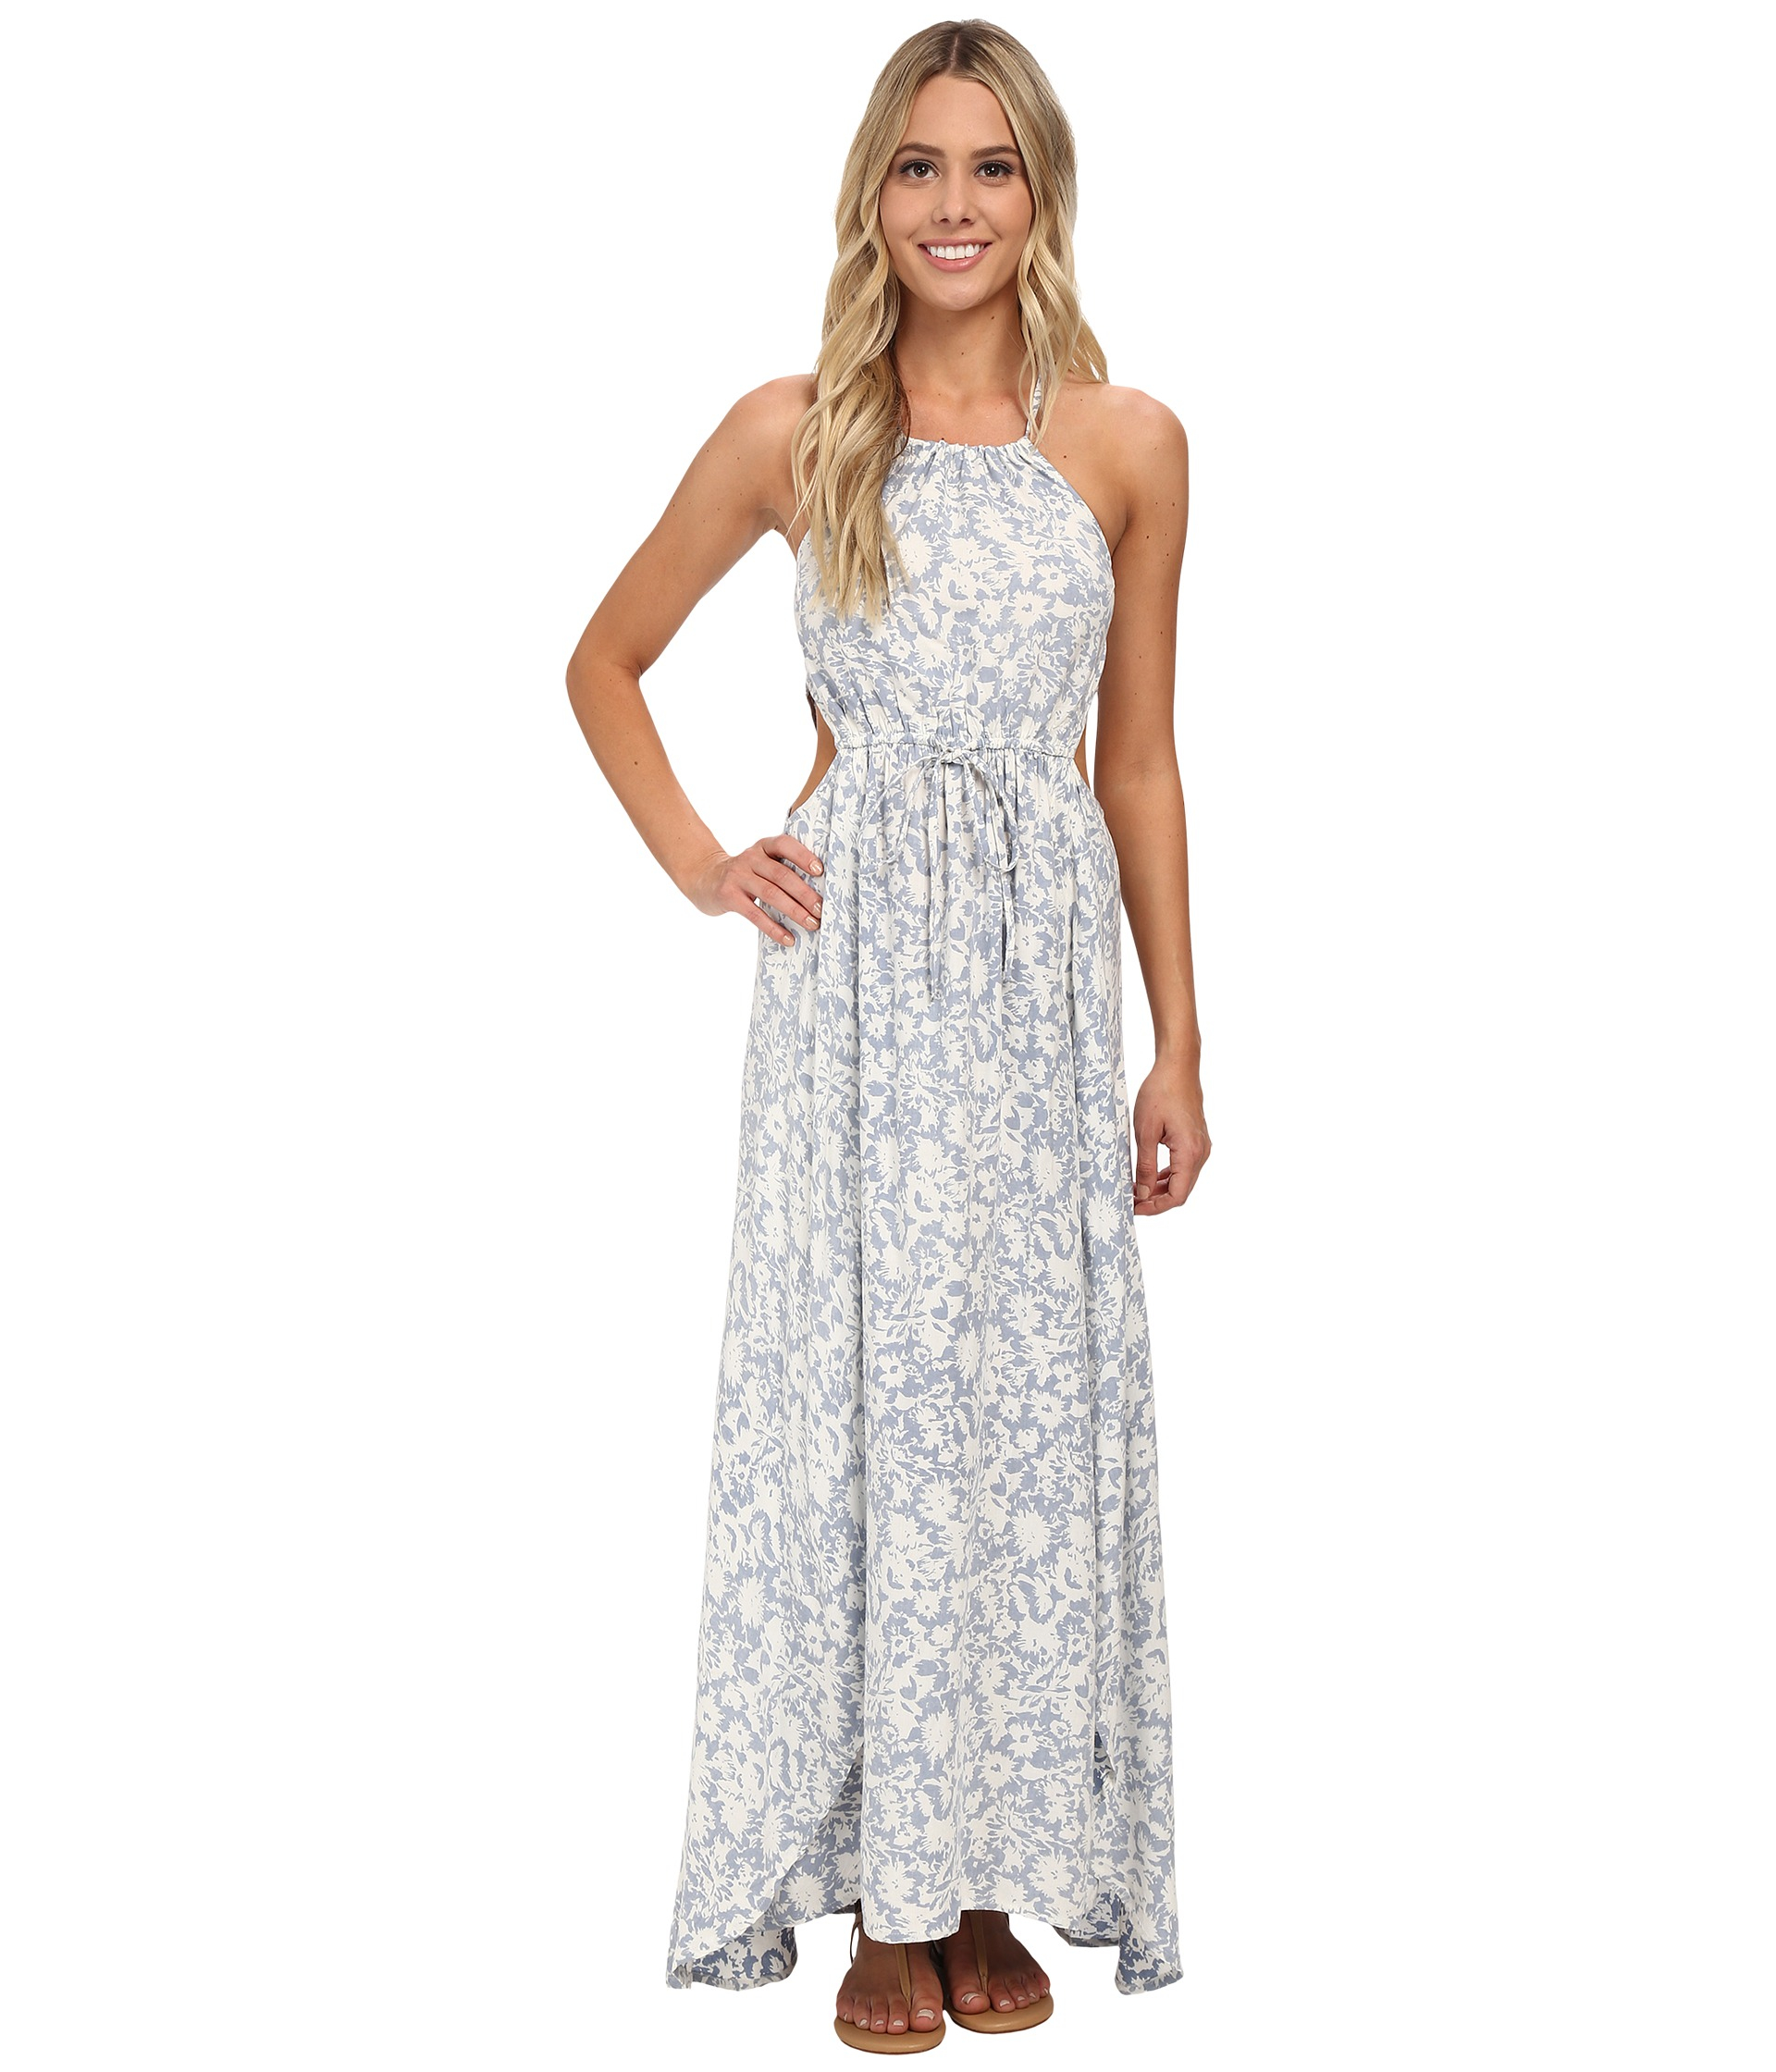 8de5dffe669 Billabong Sounds Of The Sea Maxi Dress in Blue - Lyst